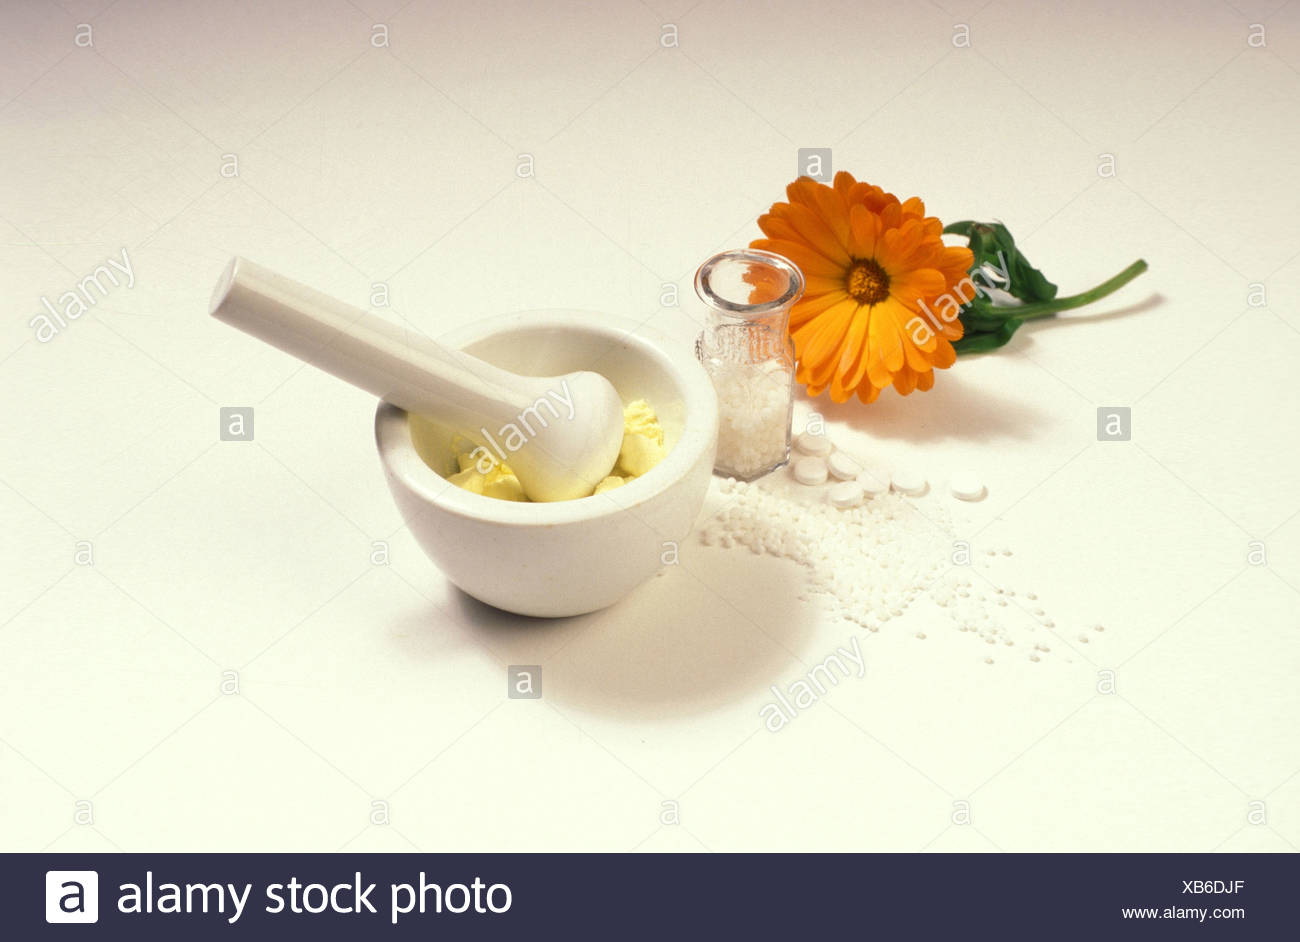 Flower and mortar - Stock Image